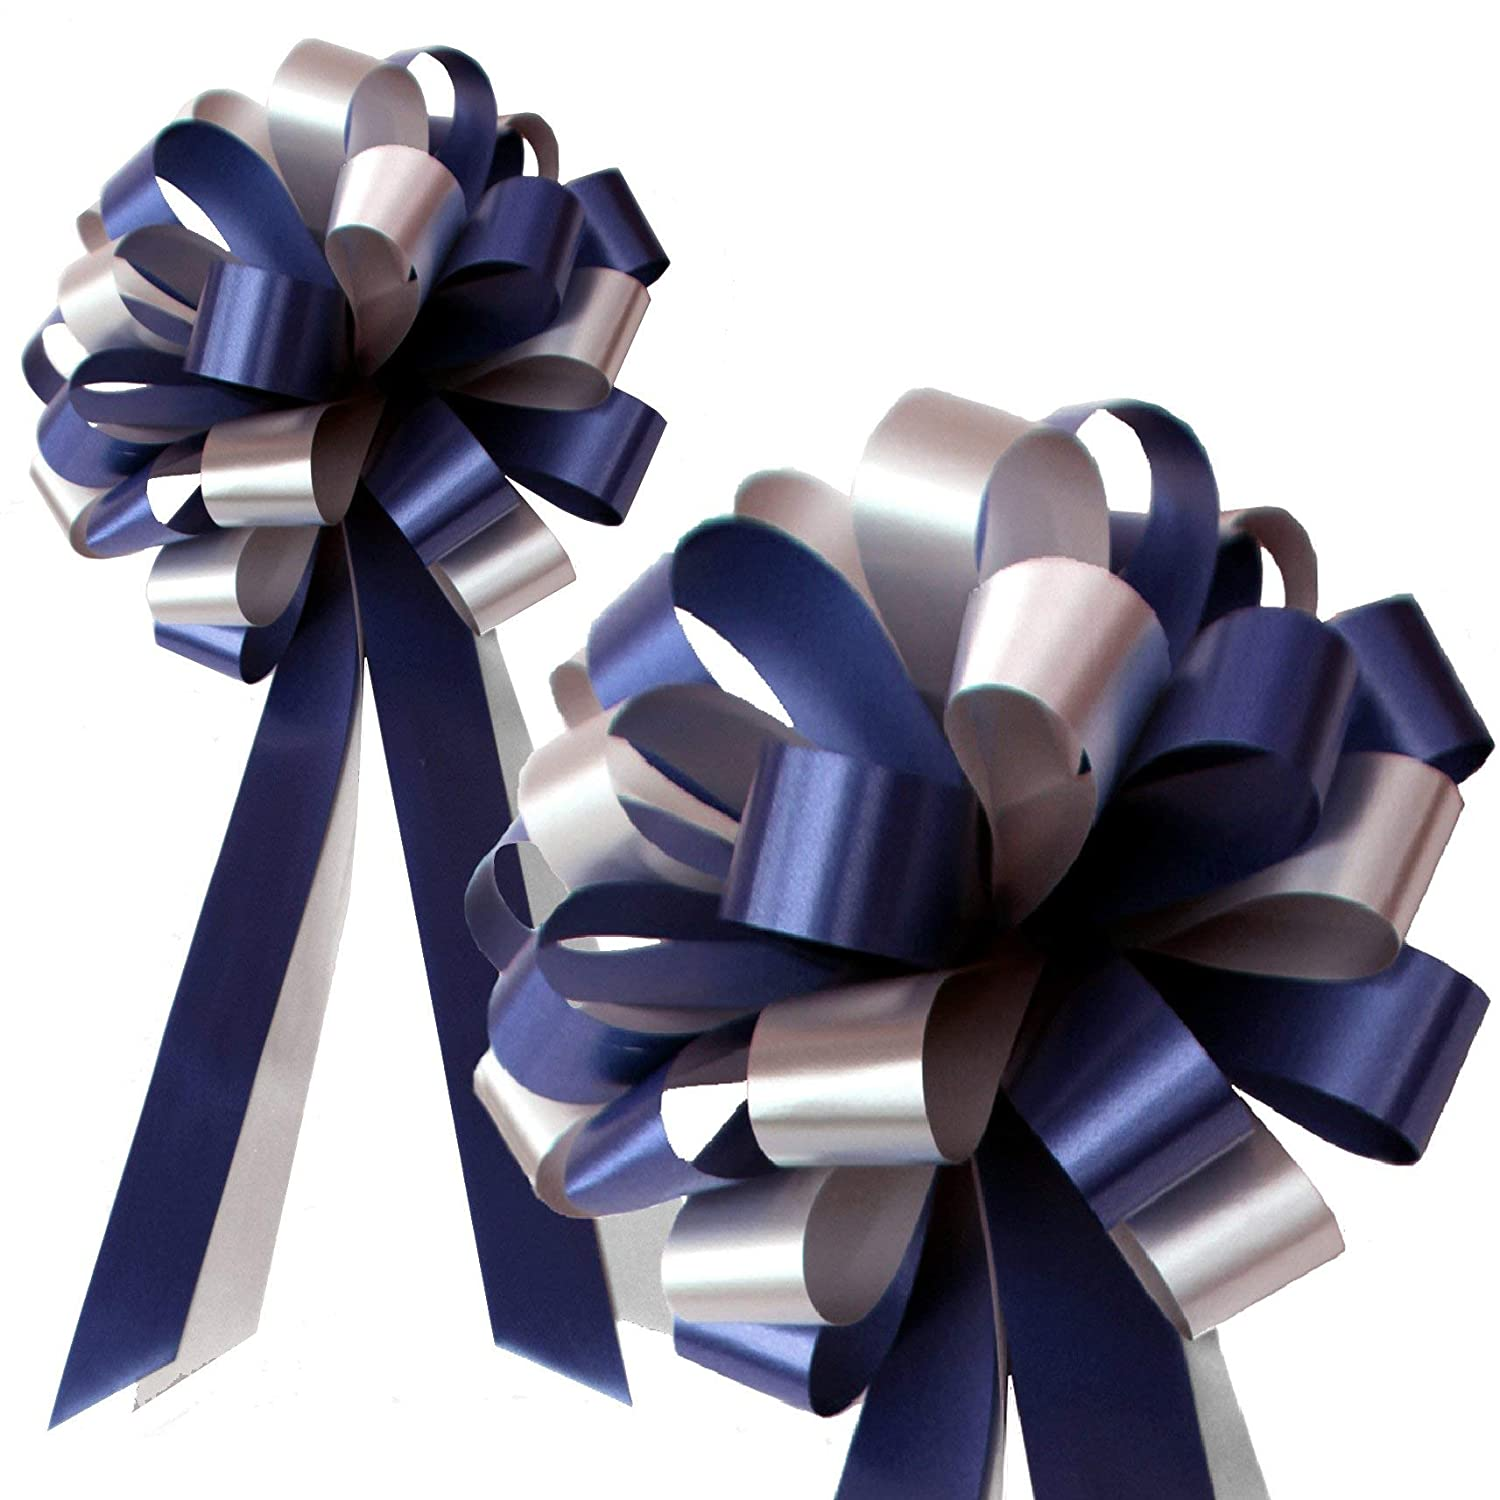 Reception Fundraiser Mothers Day 20 cm Christmas Fathers Day Set of 6 Boxing Day Wide Easter GiftWrap Etc 8 in Europe Day Navy Blue and Silver Wedding Pew Pull Bows